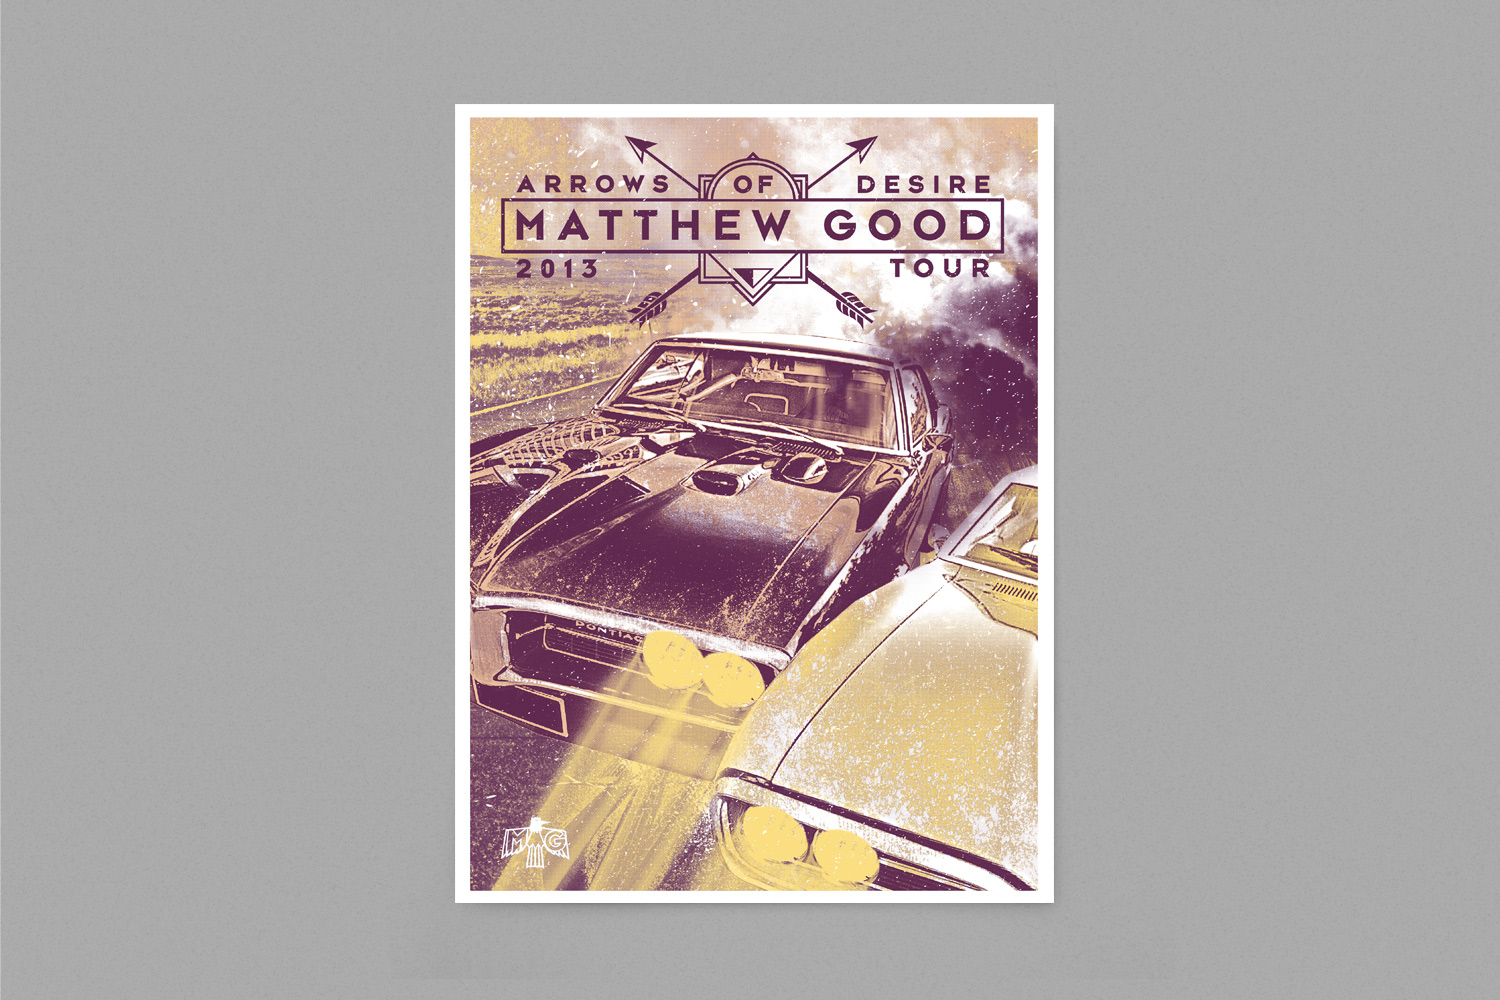 Matthew Good Arrows Of Desire Poster Design